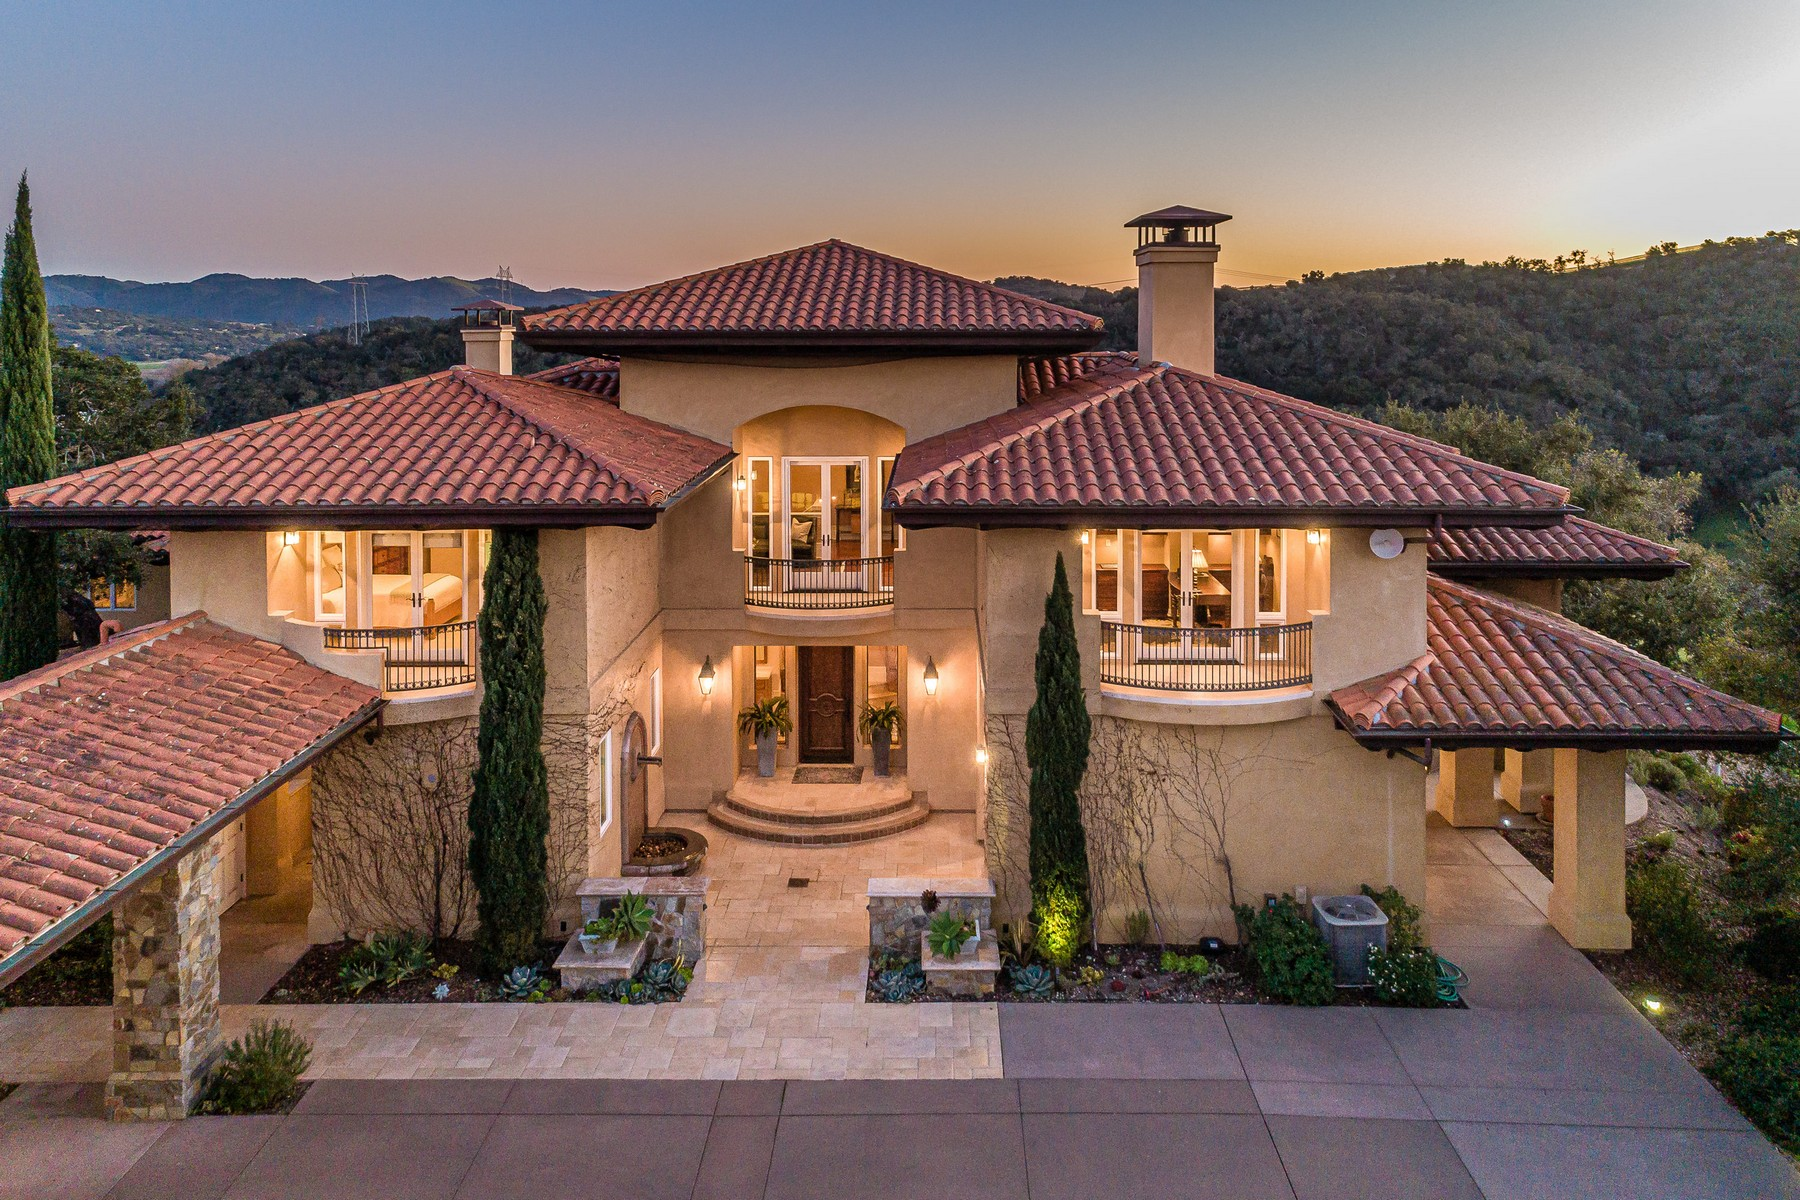 Single Family Homes for Sale at Expansive Wine Country Villa 765 Prickly Pear Way Arroyo Grande, California 93420 United States